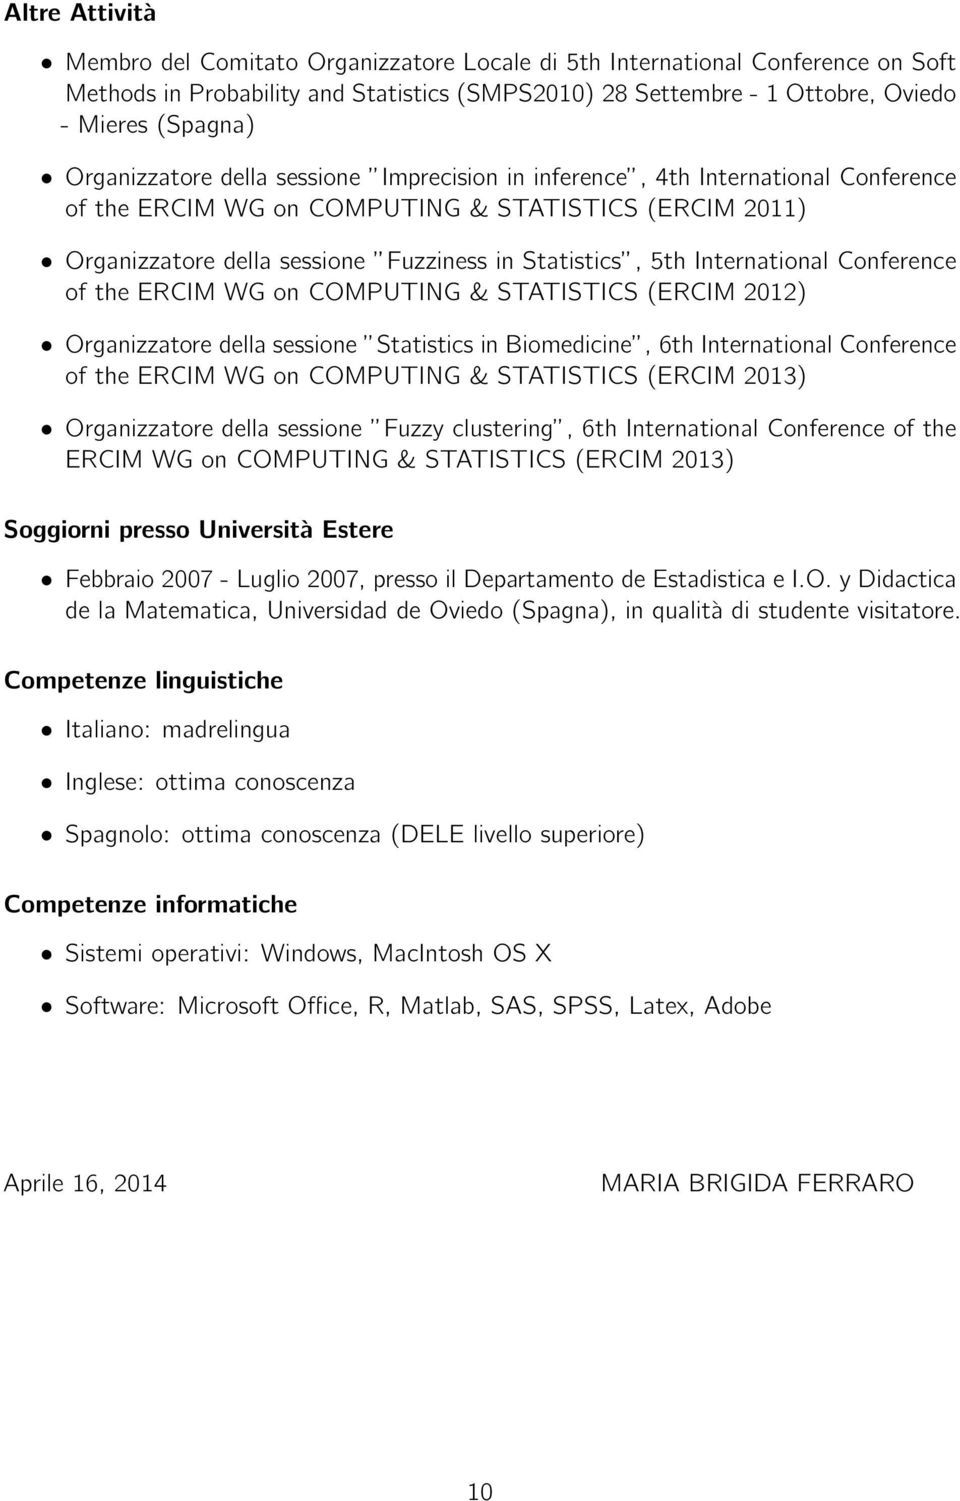 International Conference of the ERCIM WG on COMPUTING & STATISTICS (ERCIM 2012) Organizzatore della sessione Statistics in Biomedicine, 6th International Conference of the ERCIM WG on COMPUTING &